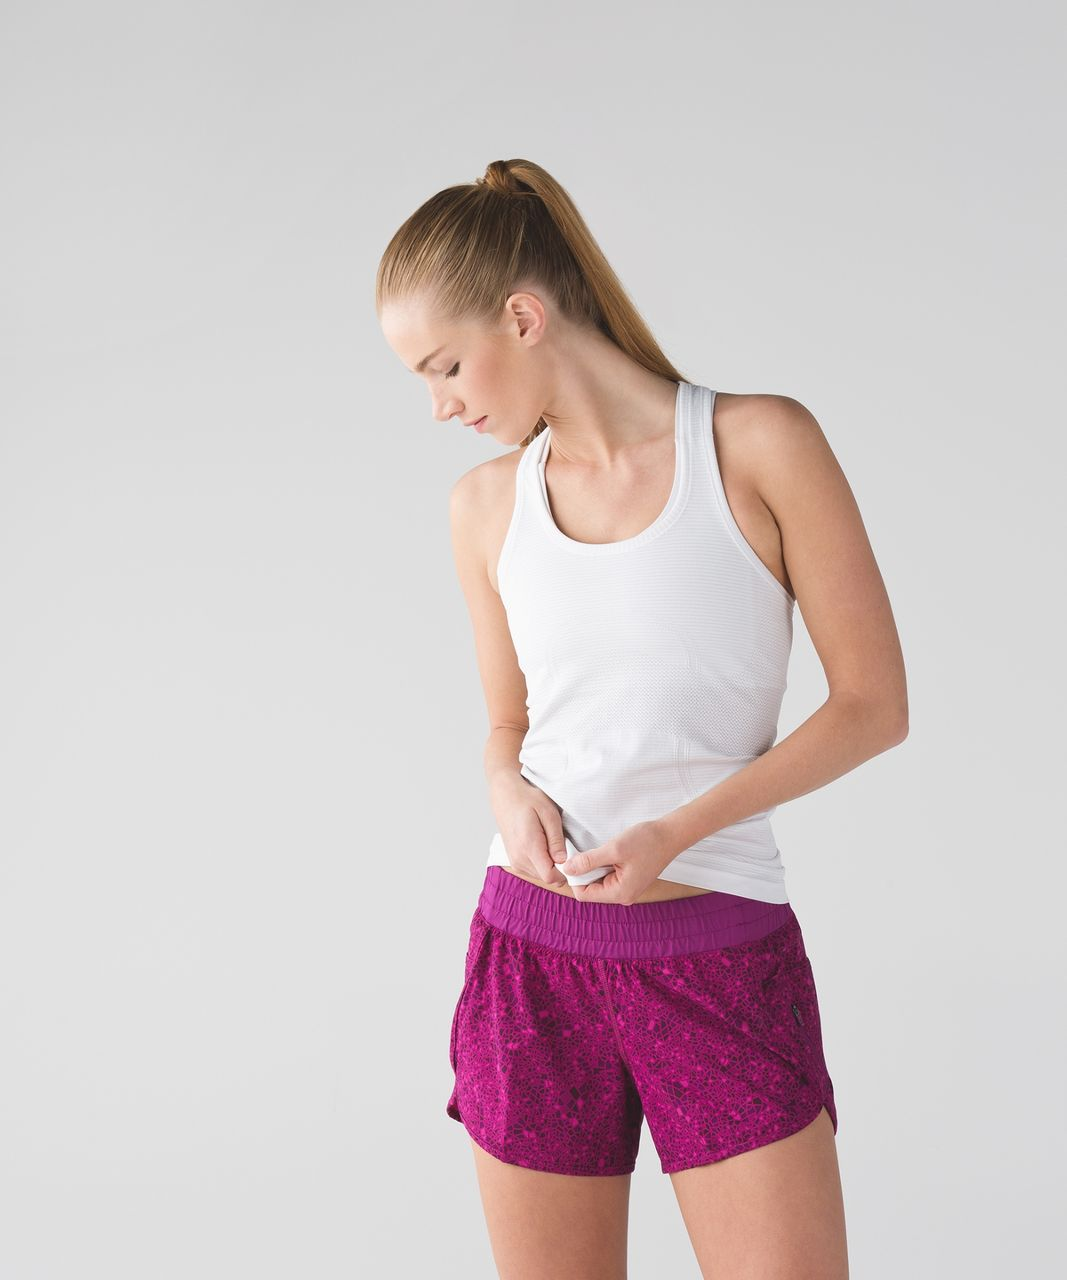 Lululemon Tracker Short III - Paradise Geo Regal Plum Multi / Regal Plum